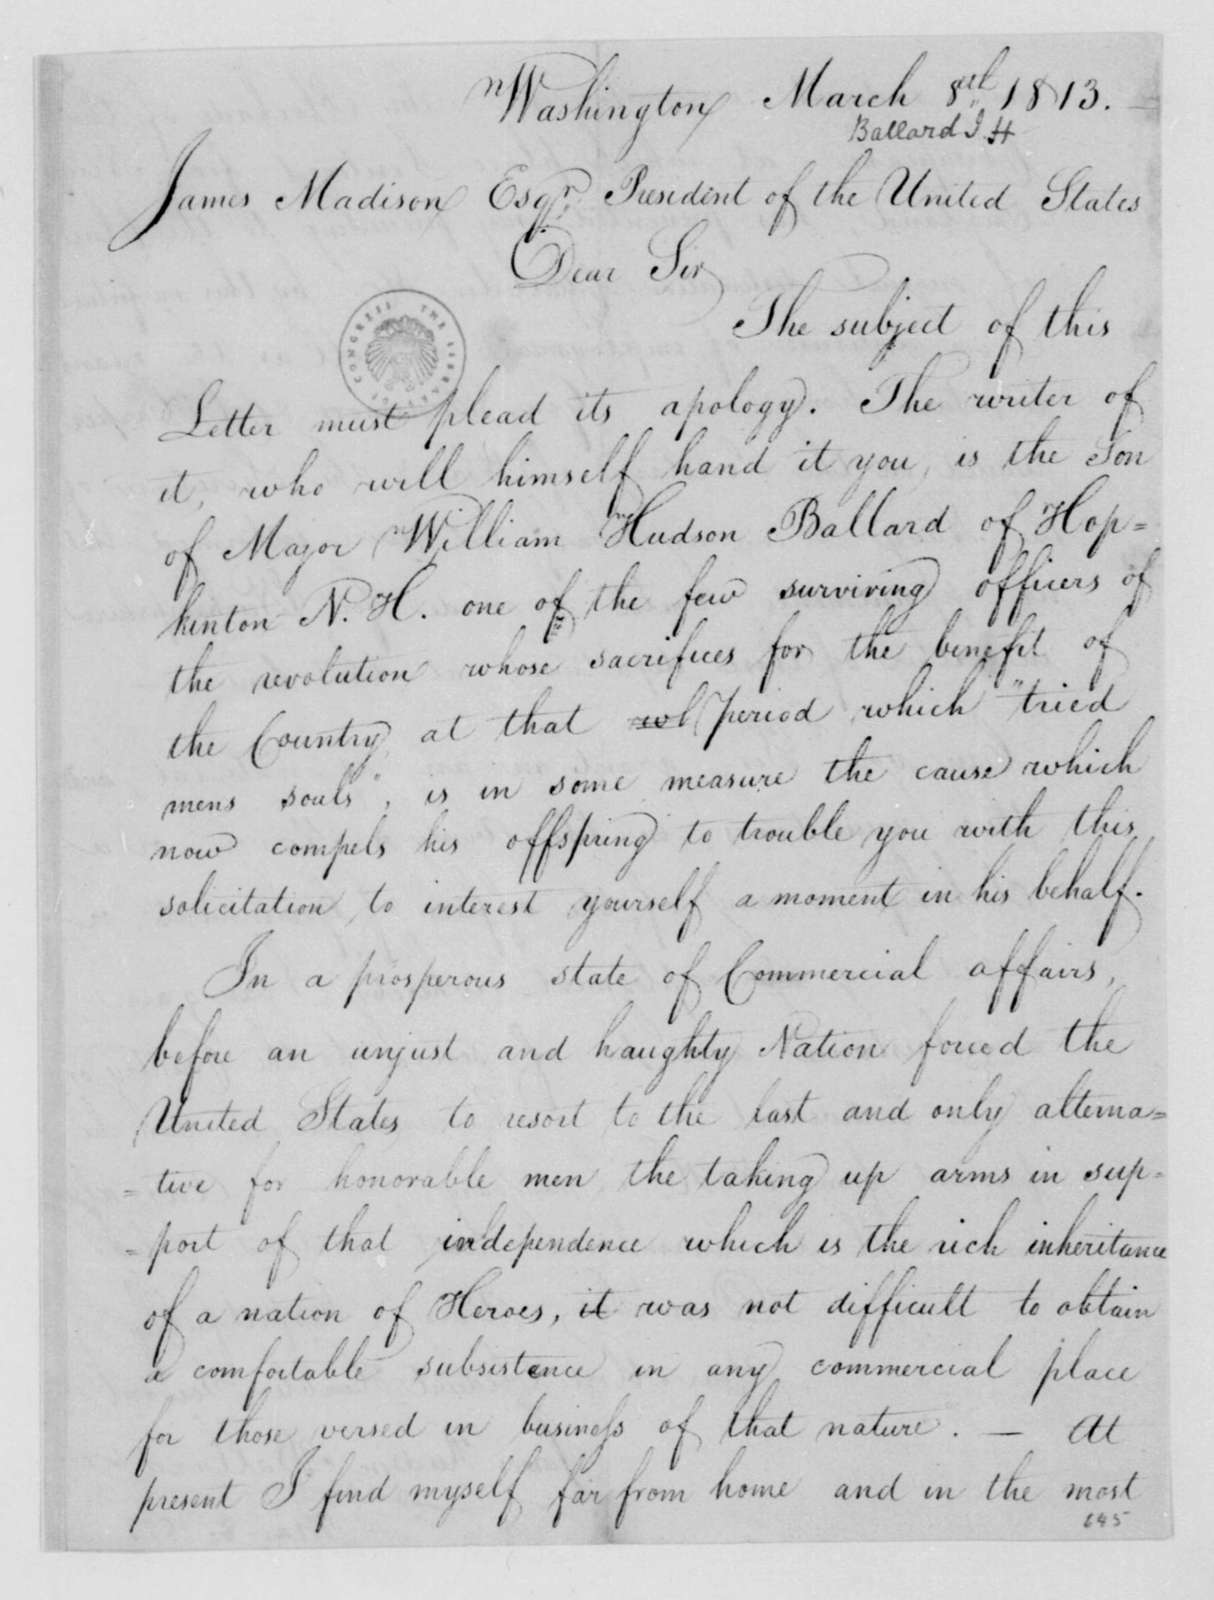 Jamea Hudson Ballard to James Madison, March 8, 1813.